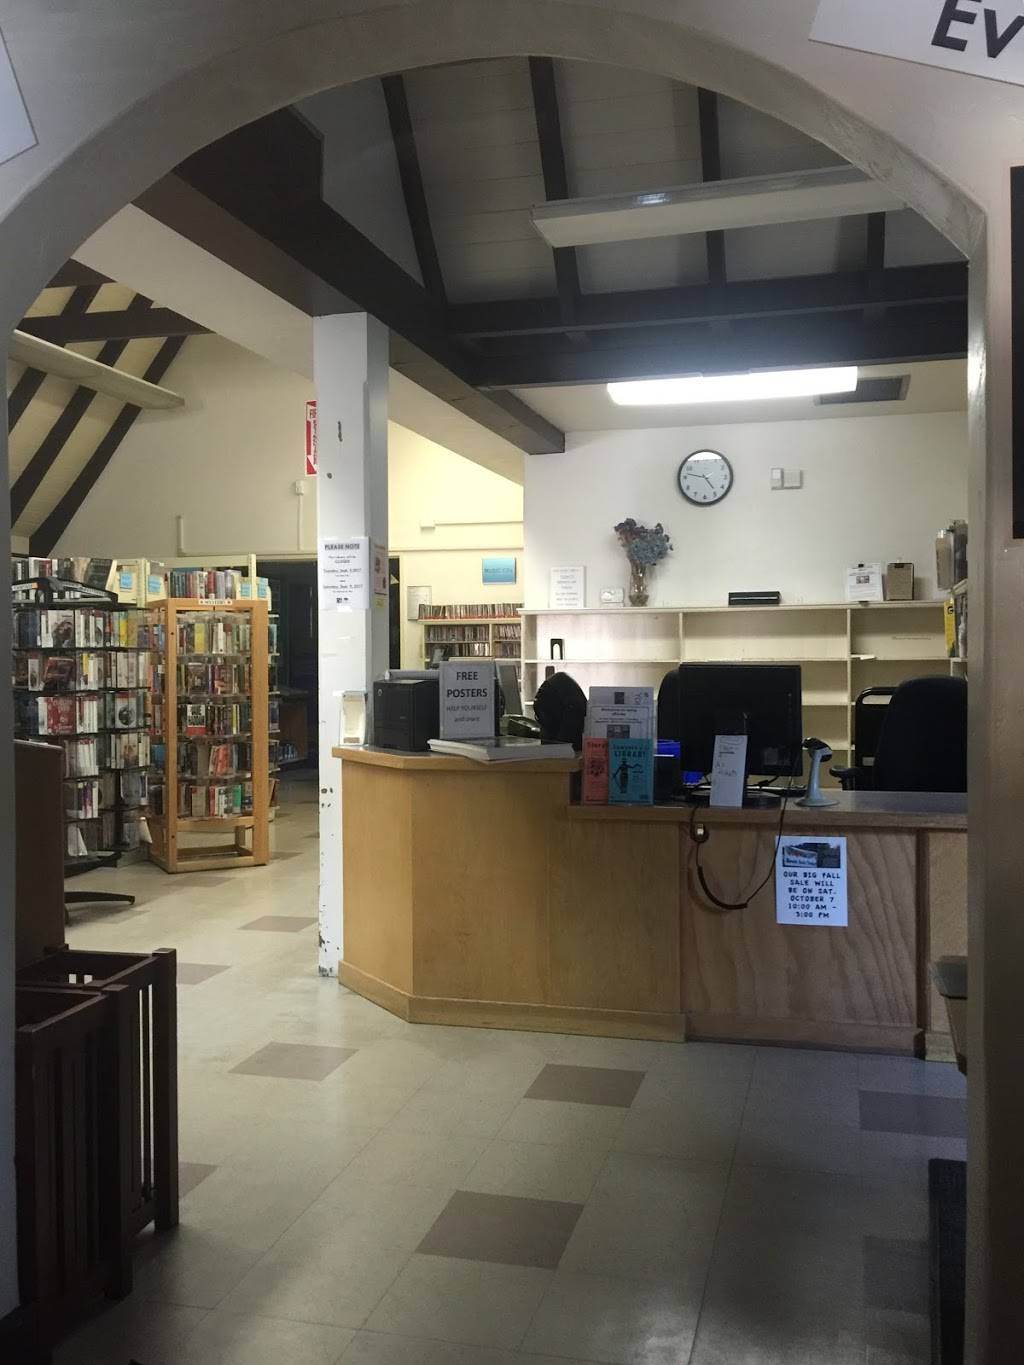 Oakland Public Library: Montclair Branch - library  | Photo 1 of 8 | Address: 1687 Mountain Blvd, Oakland, CA 94611, USA | Phone: (510) 482-7810